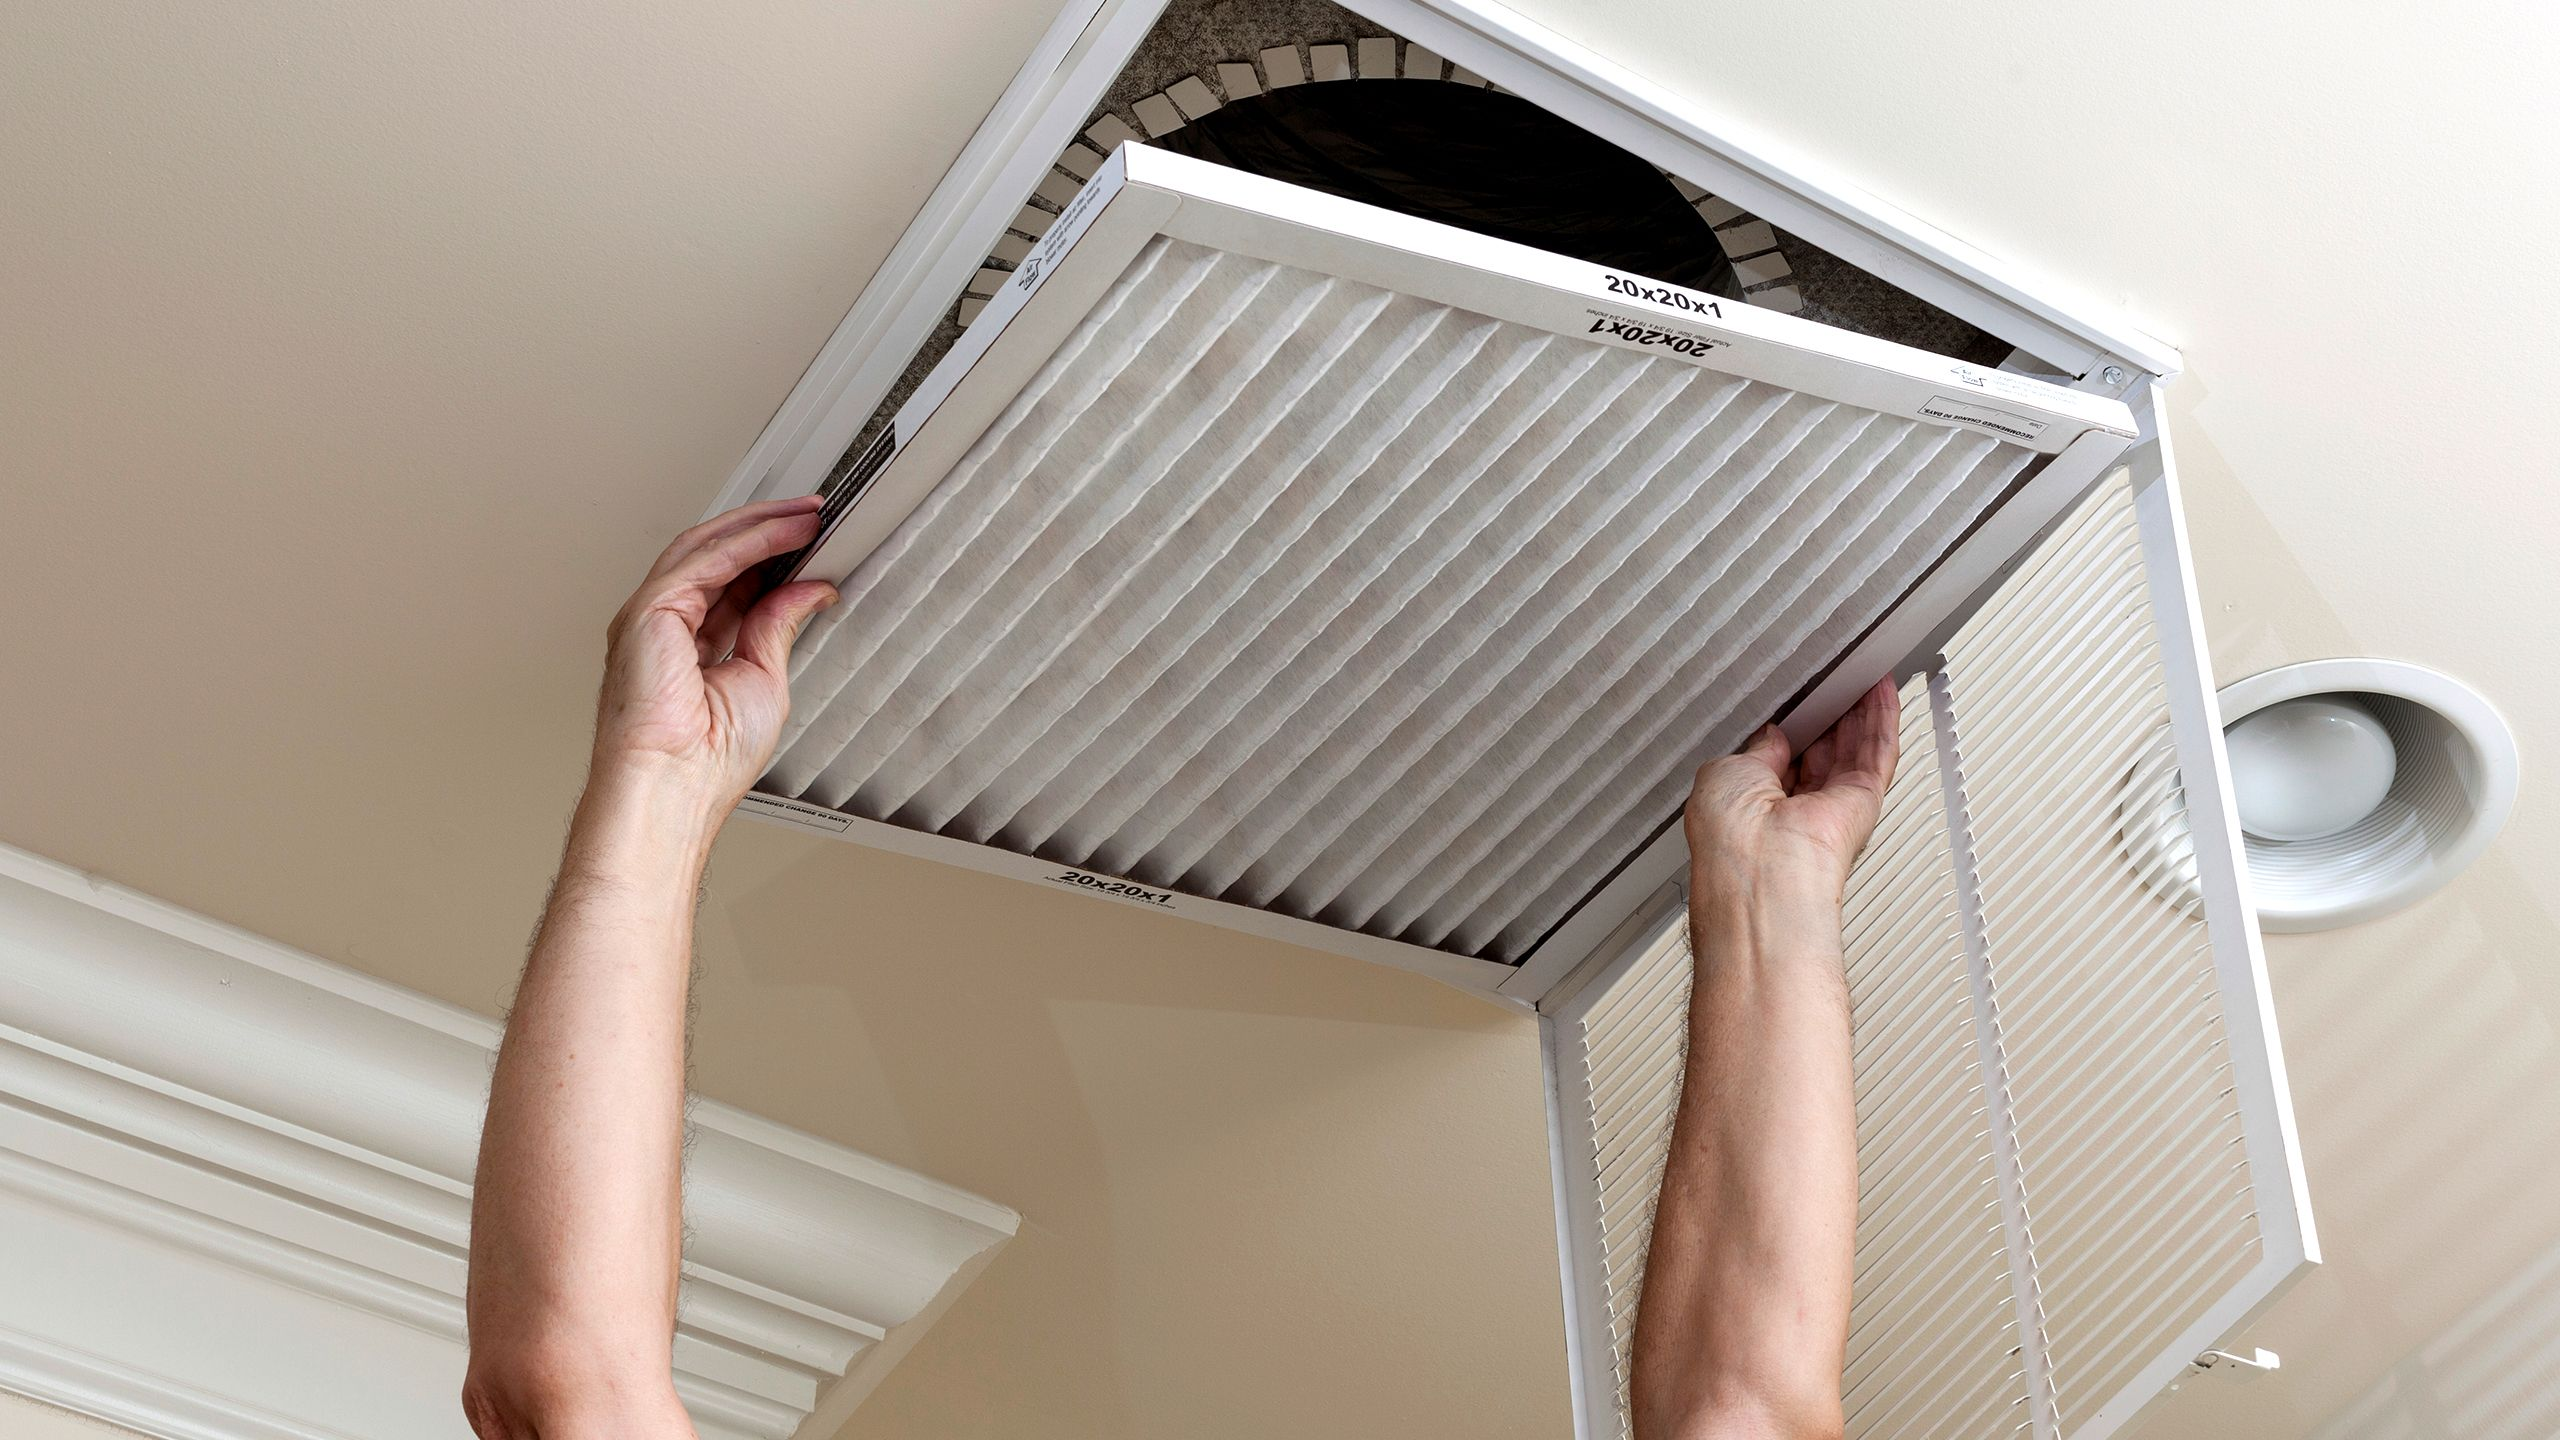 The 5 tools you need to clean your air Air conditioning